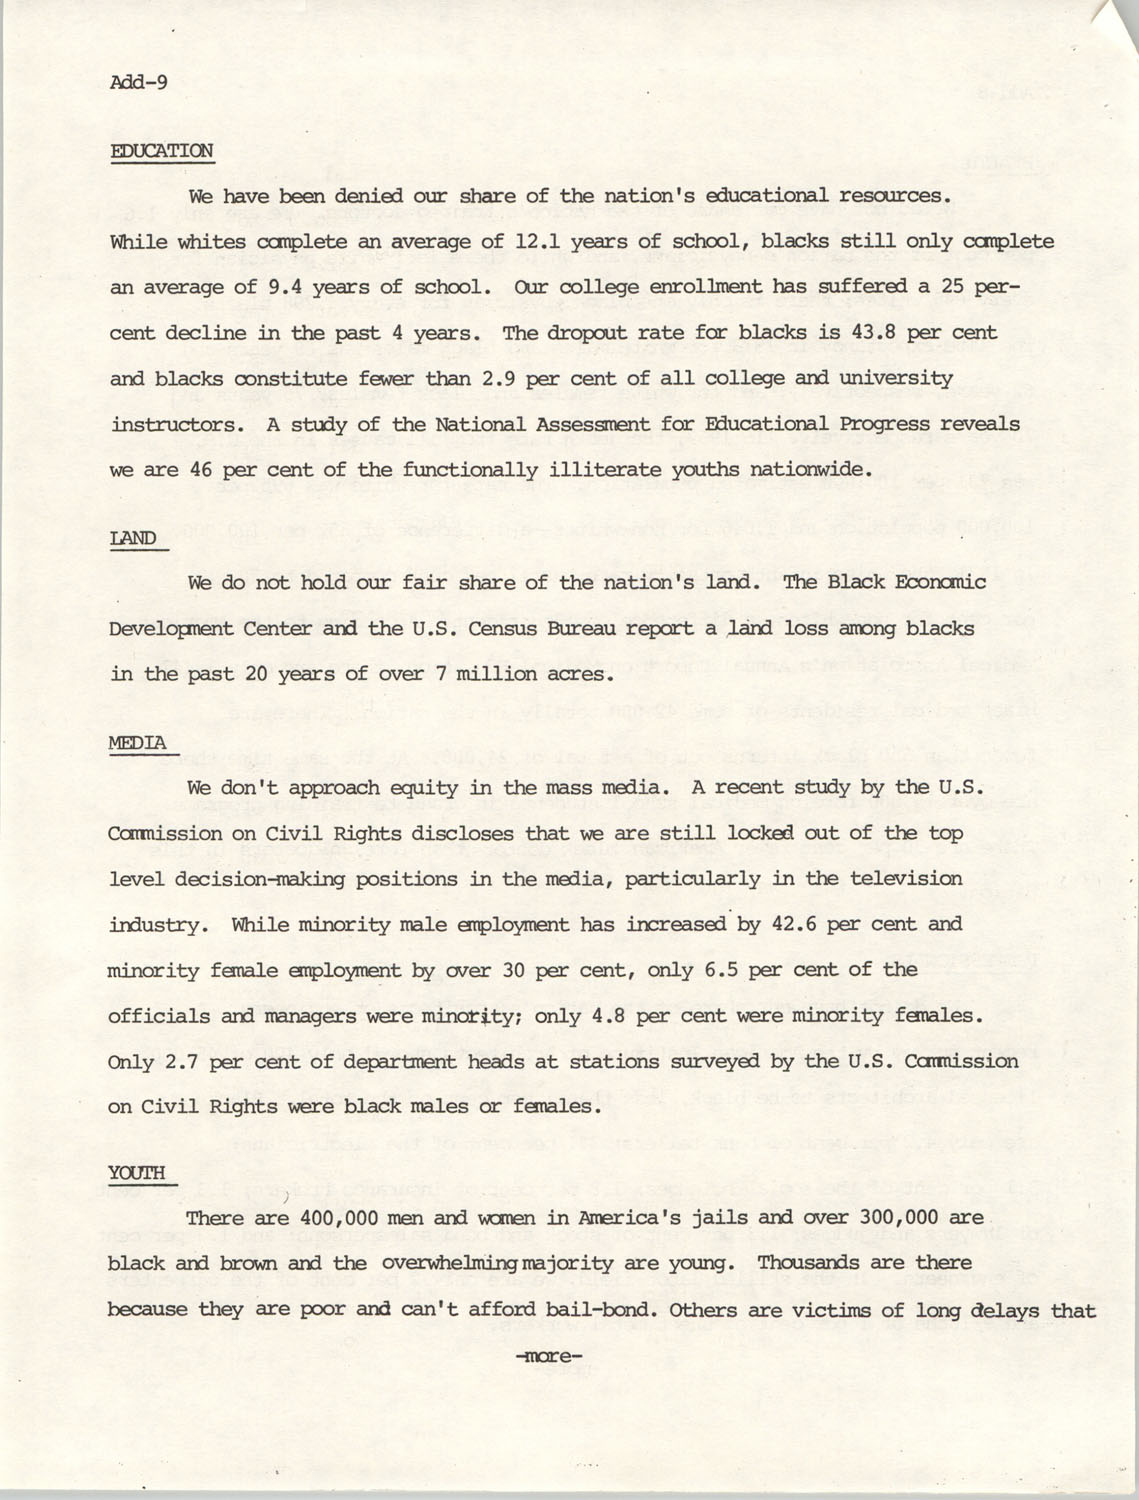 Speech Before the Republican National Committee, Page 9